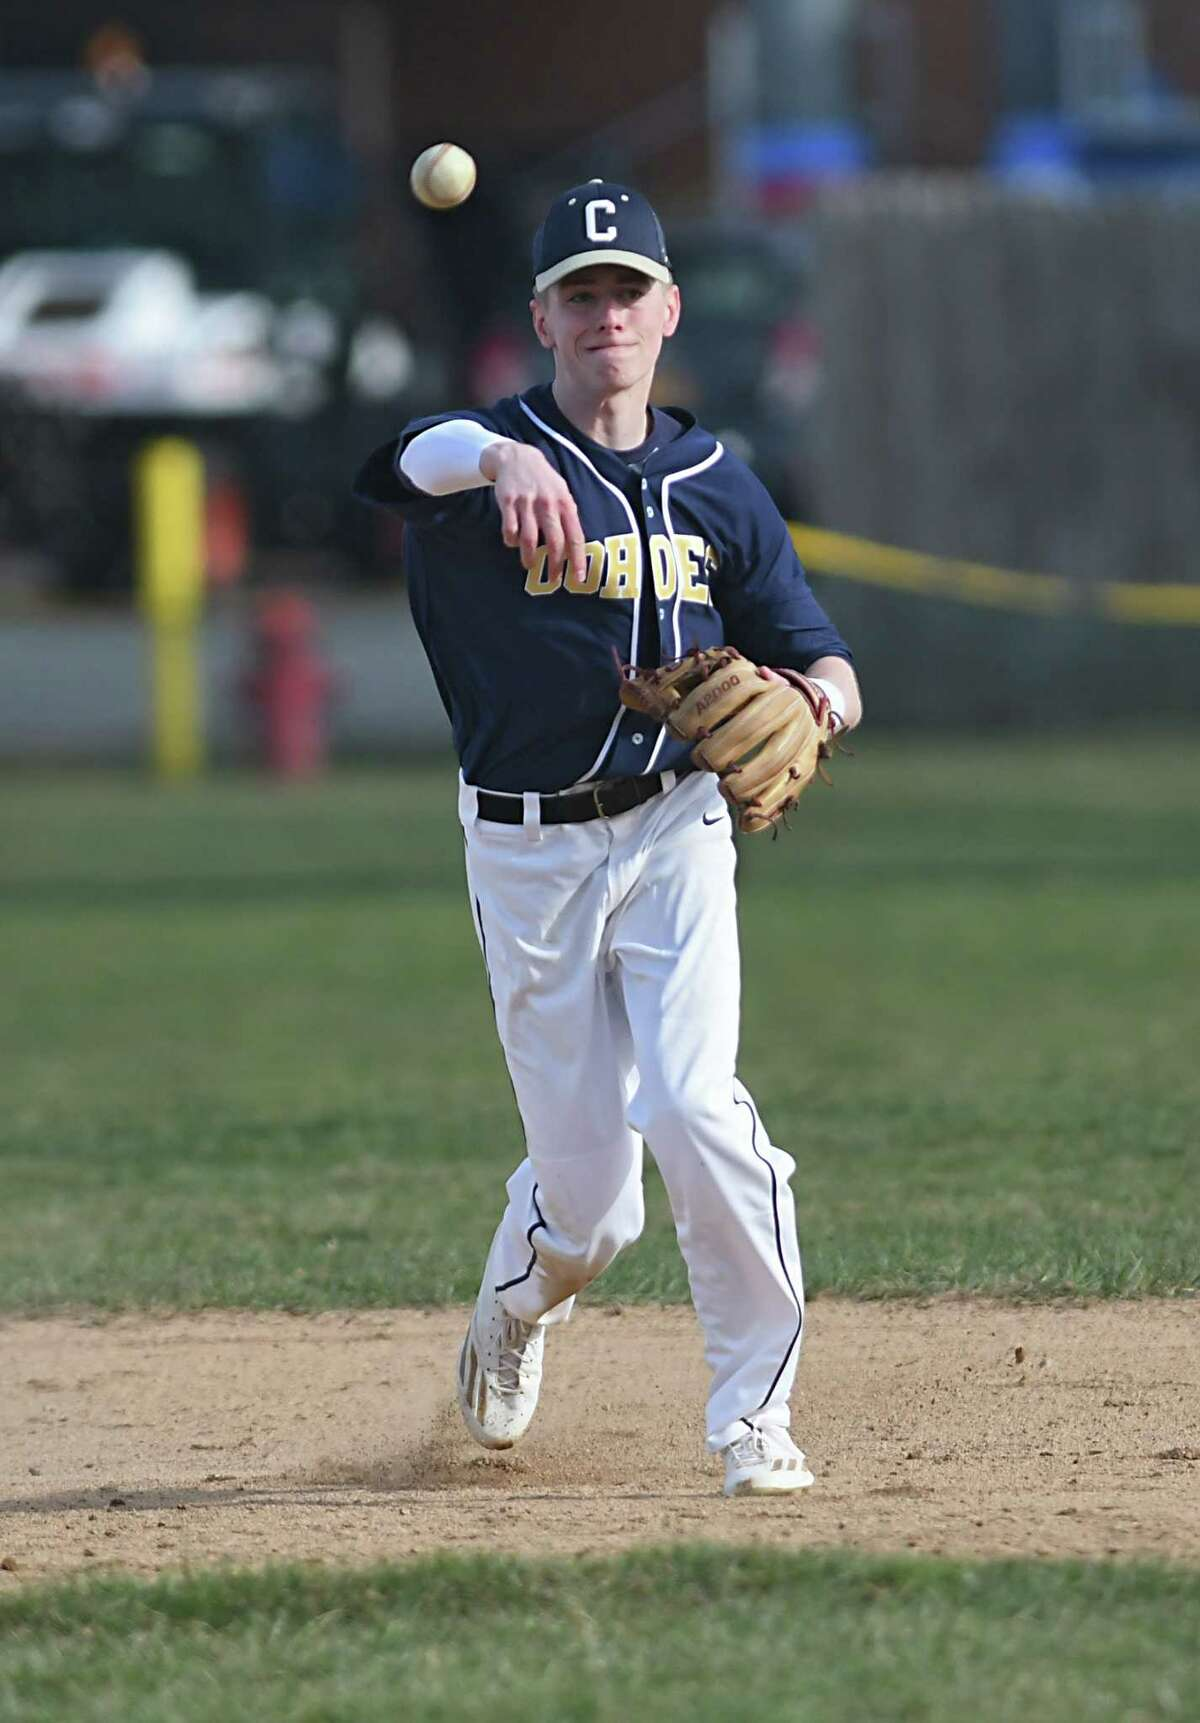 Cohoes shortstop Derek Becker throws the ball to first base during a baseball game against Voorheesville on Monday, April 10, 2017 in Voorheesville, N.Y. (Lori Van Buren / Times Union)